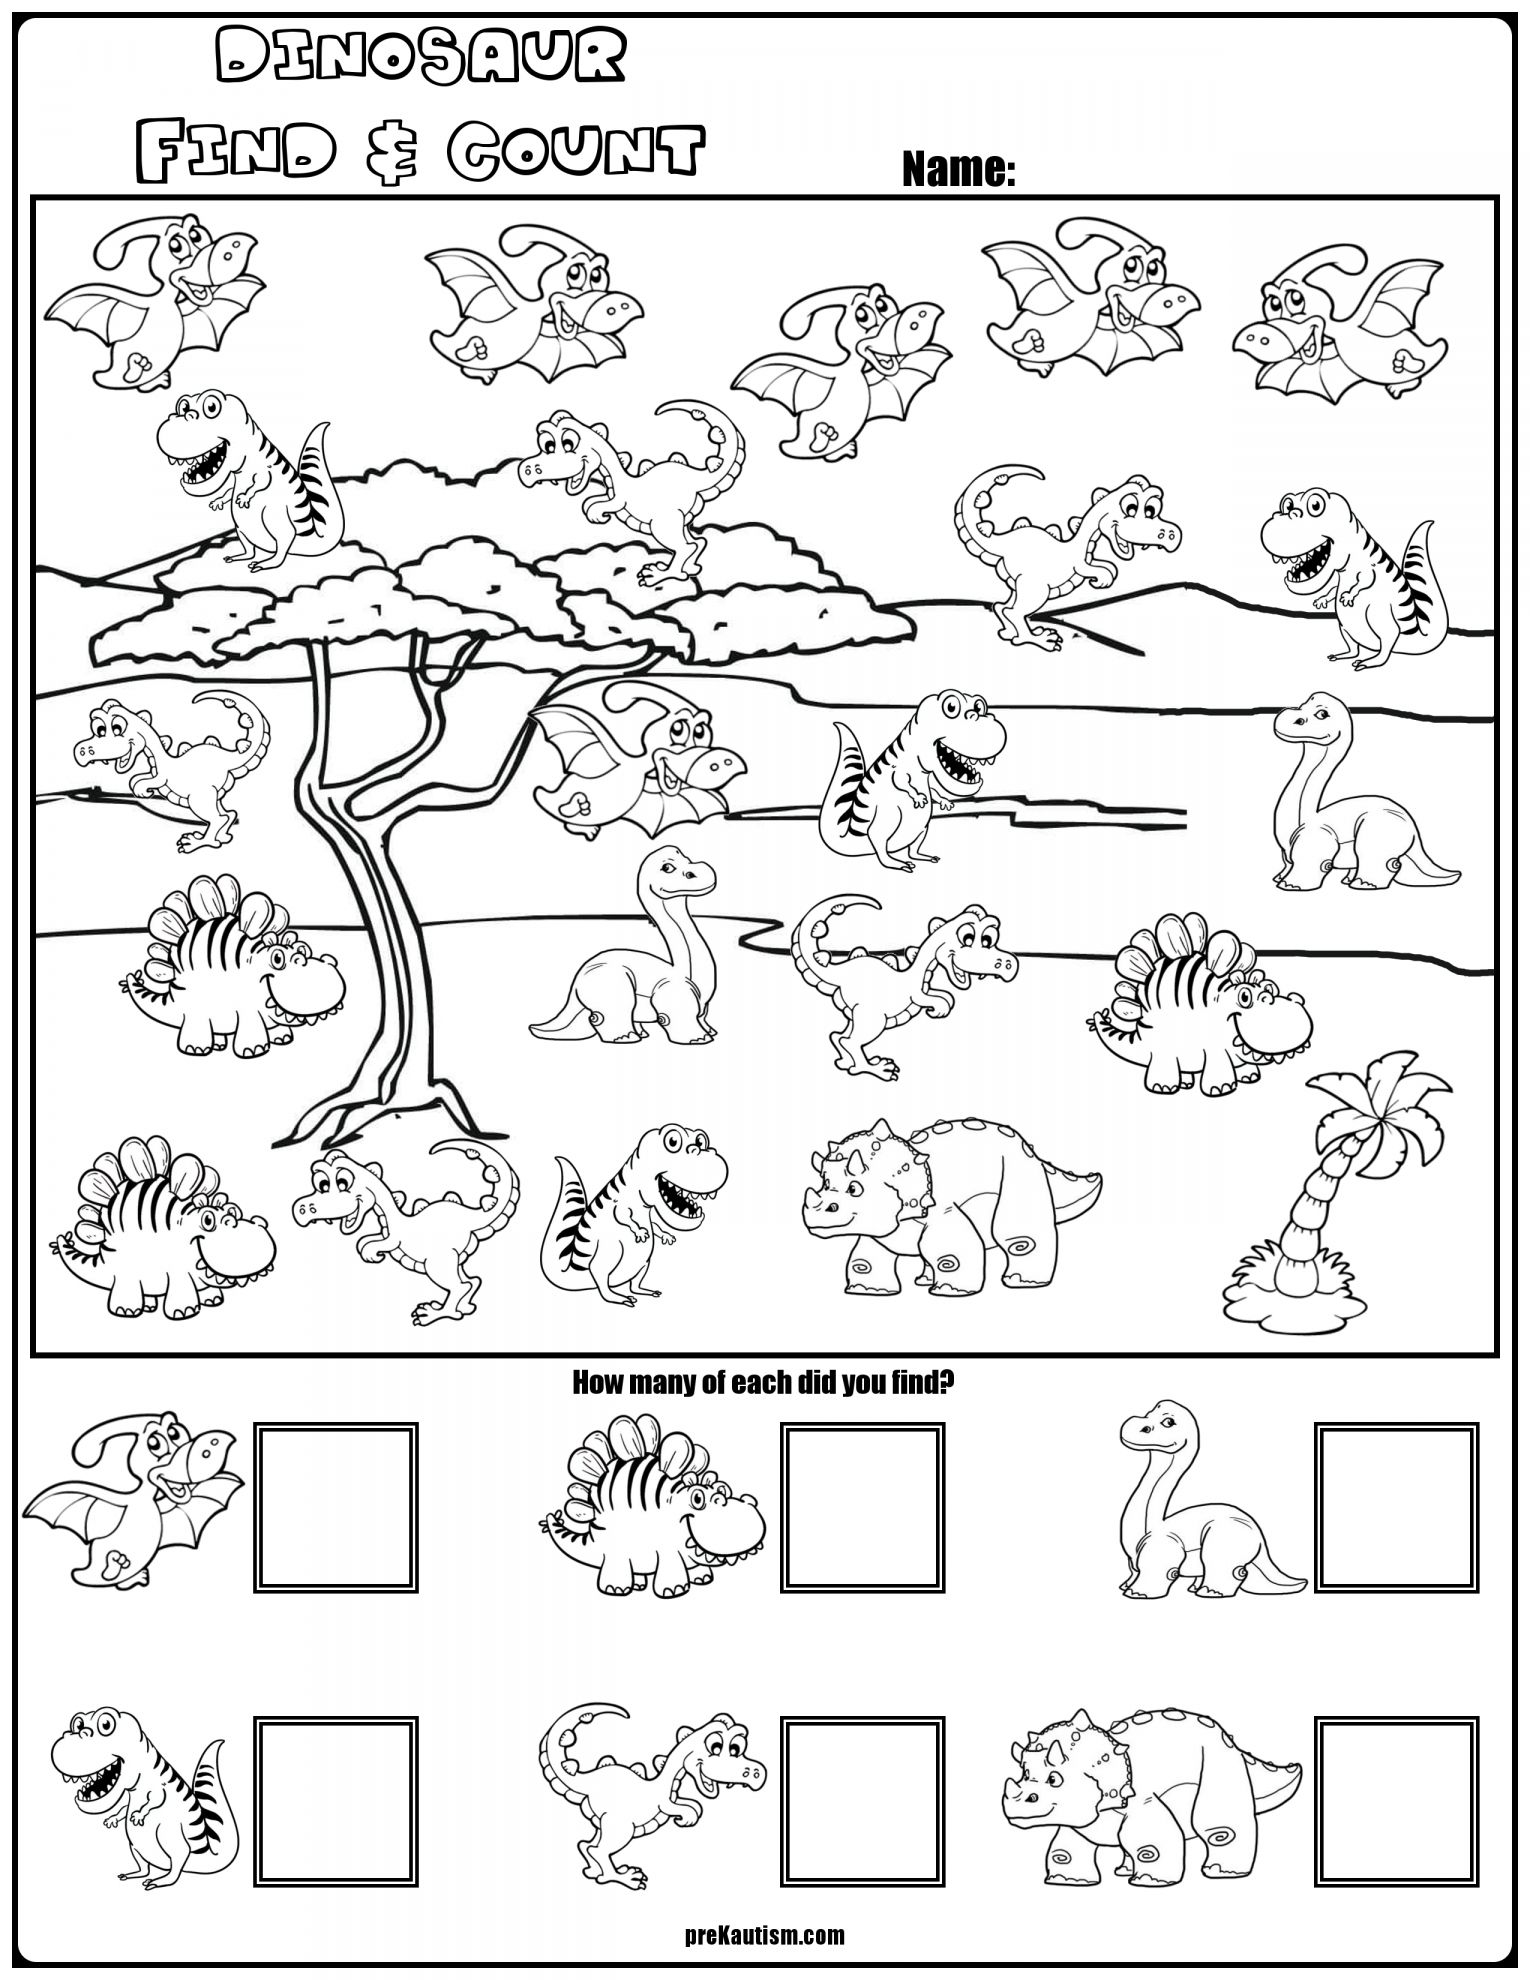 Dinosaurs Worksheet Kindergarten And Find Amp Count Dinosaur